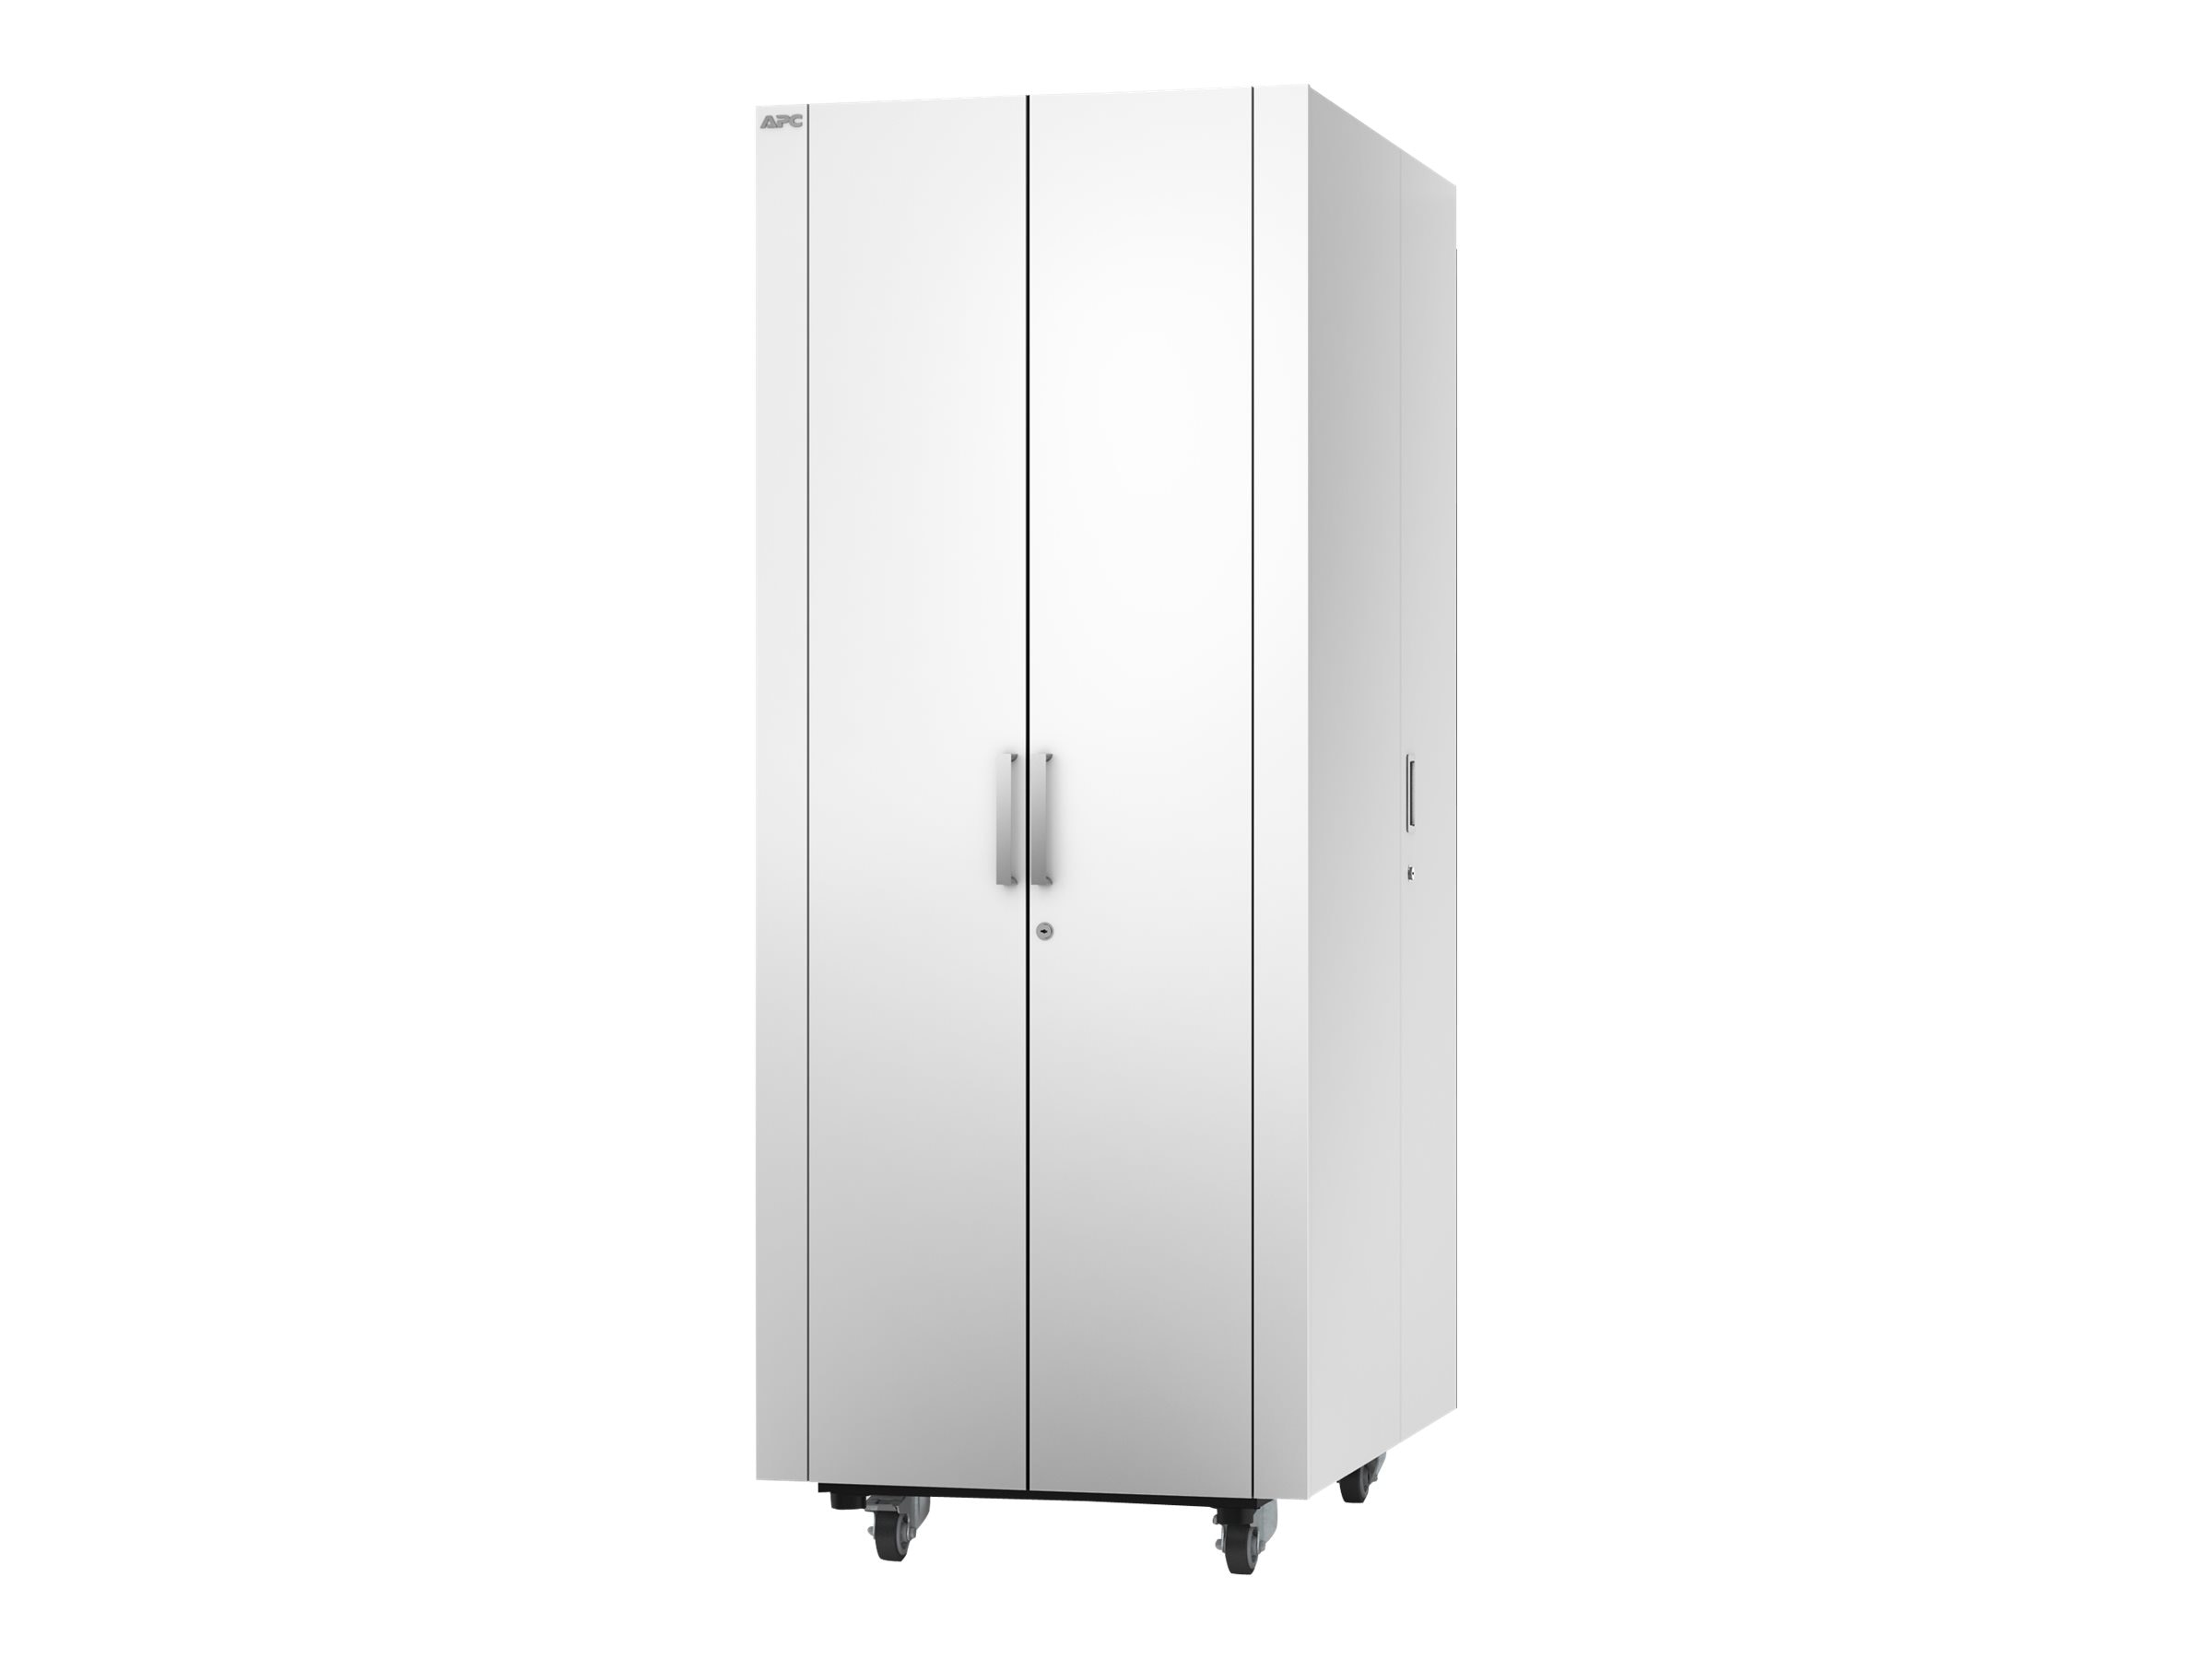 APC Netshelter CX 38U x 750mm x 1130mm Deep Enclosure, White Finish